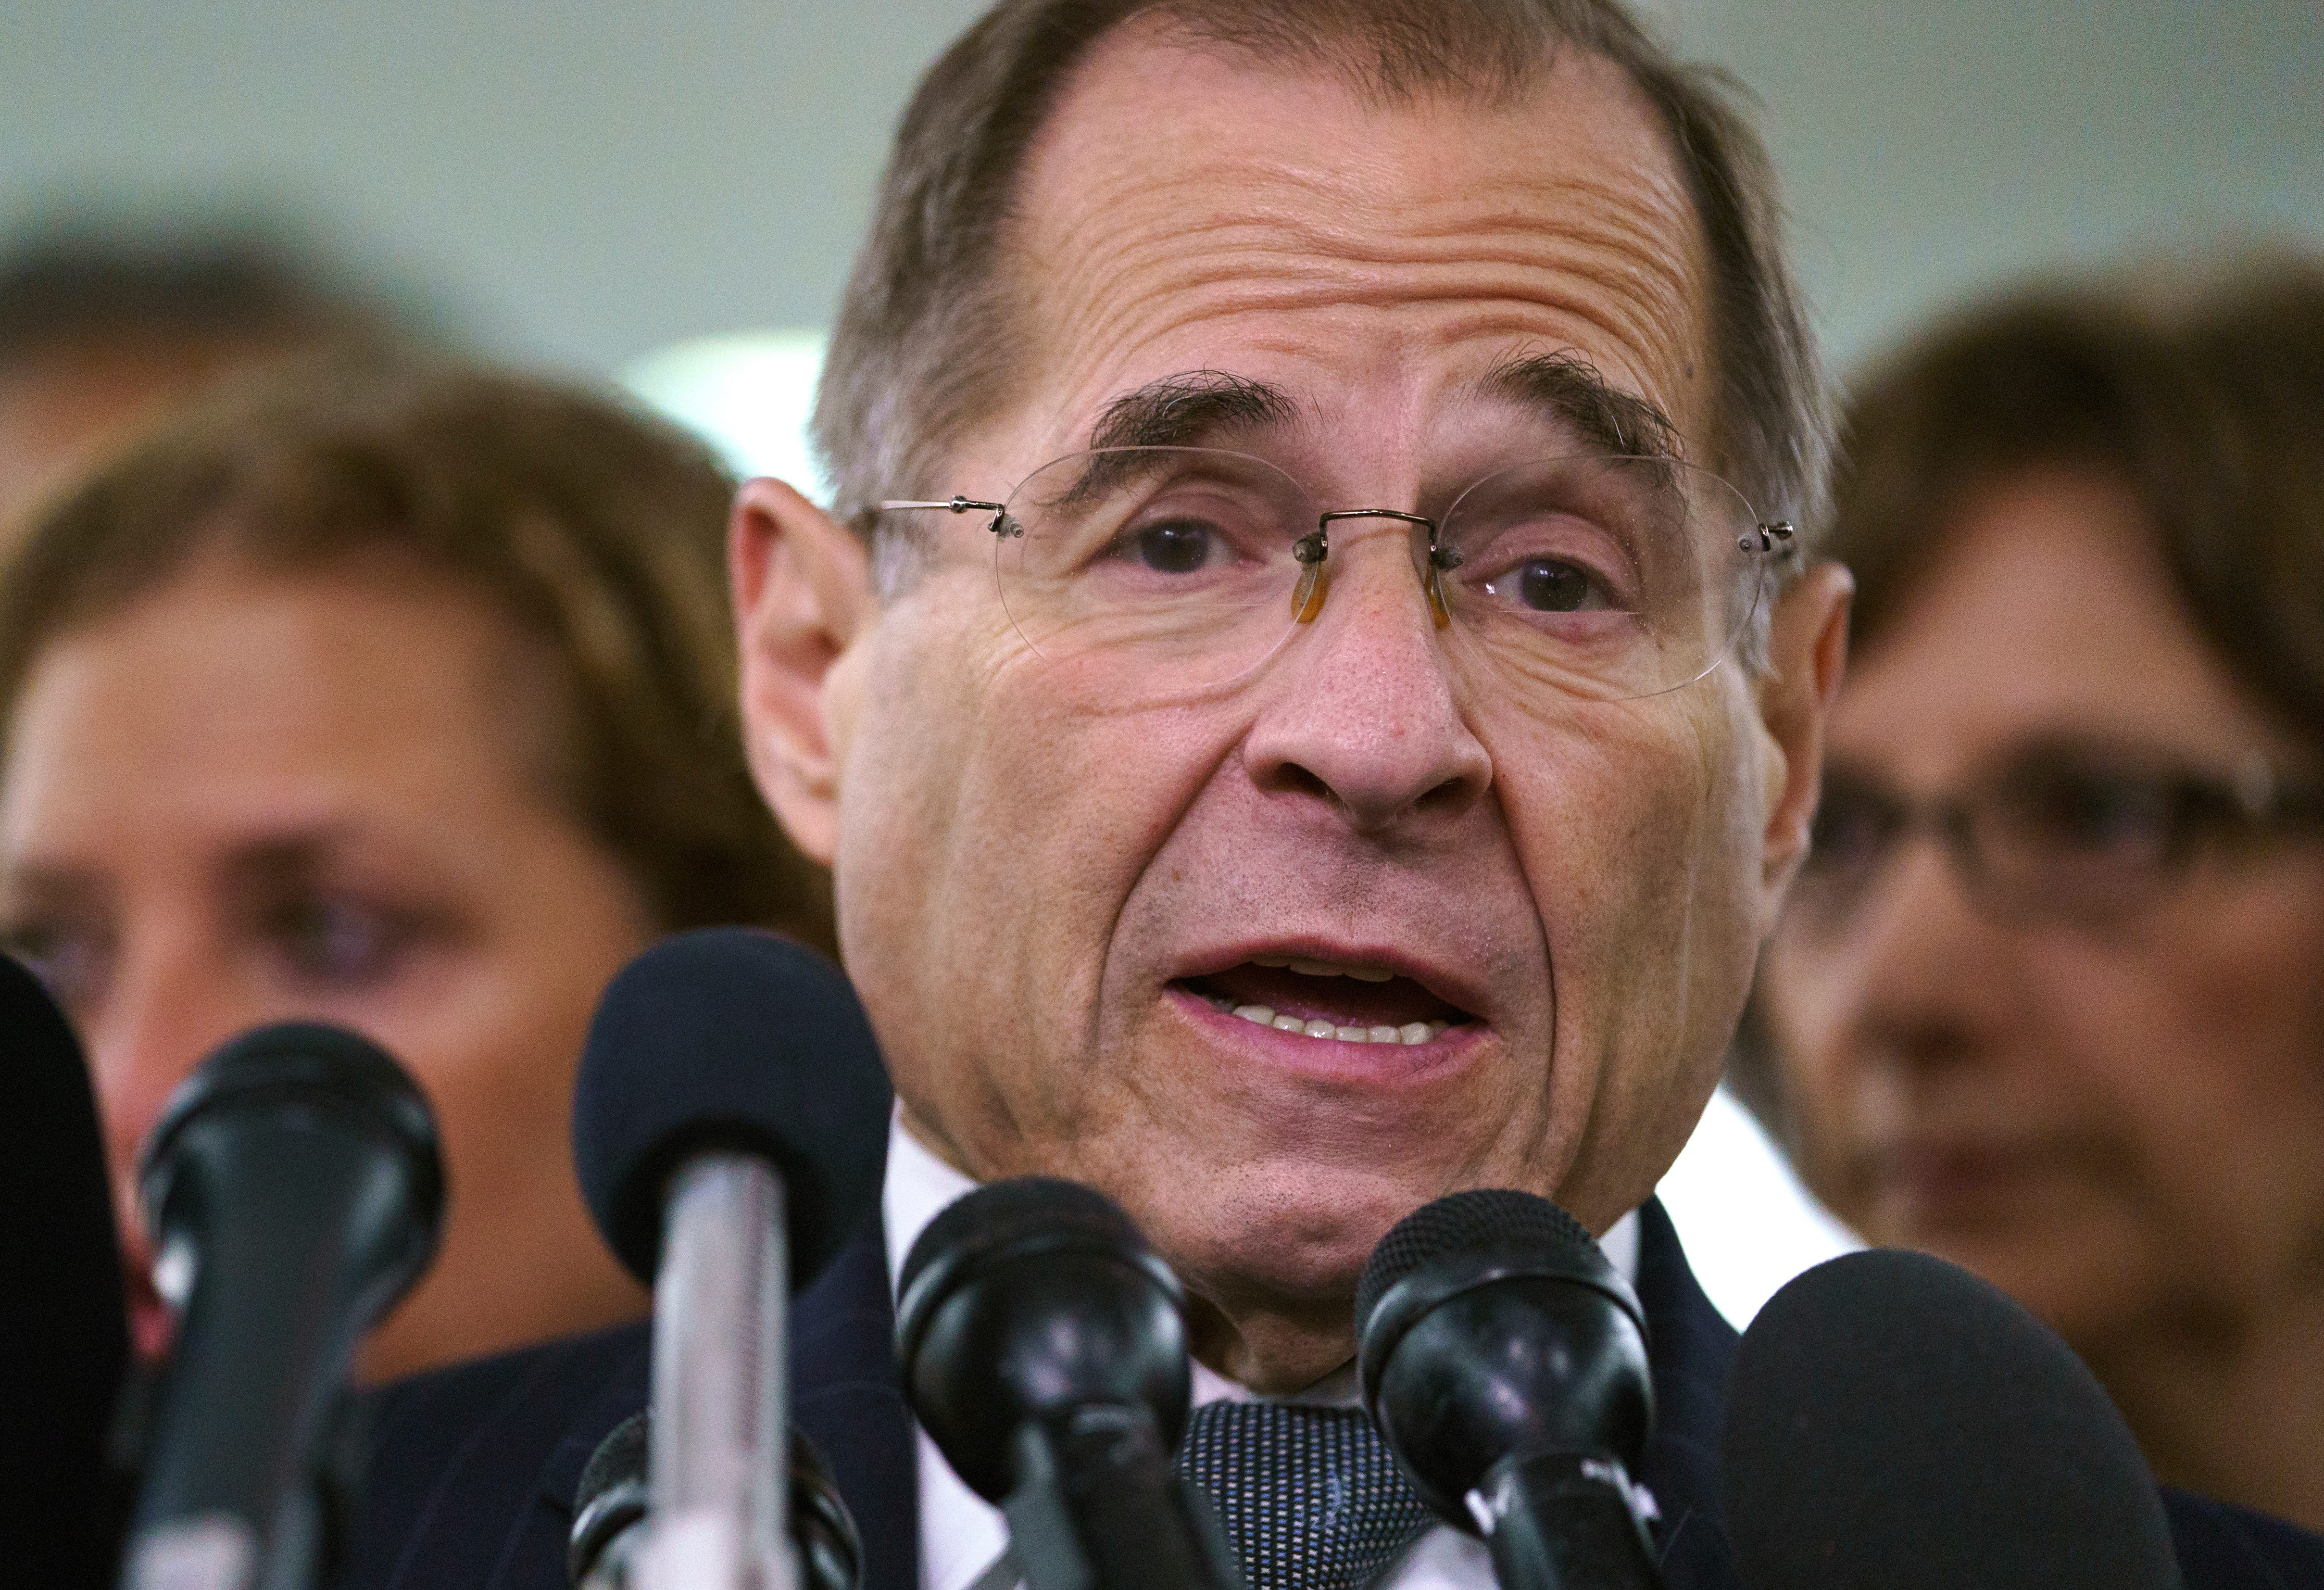 Then-House Judiciary Committee ranking member Jerry Nadler, D-N.Y., talks to media during a Senate Judiciary Committee hearing on Capitol Hill in Washington, Sept. 28, 2018.